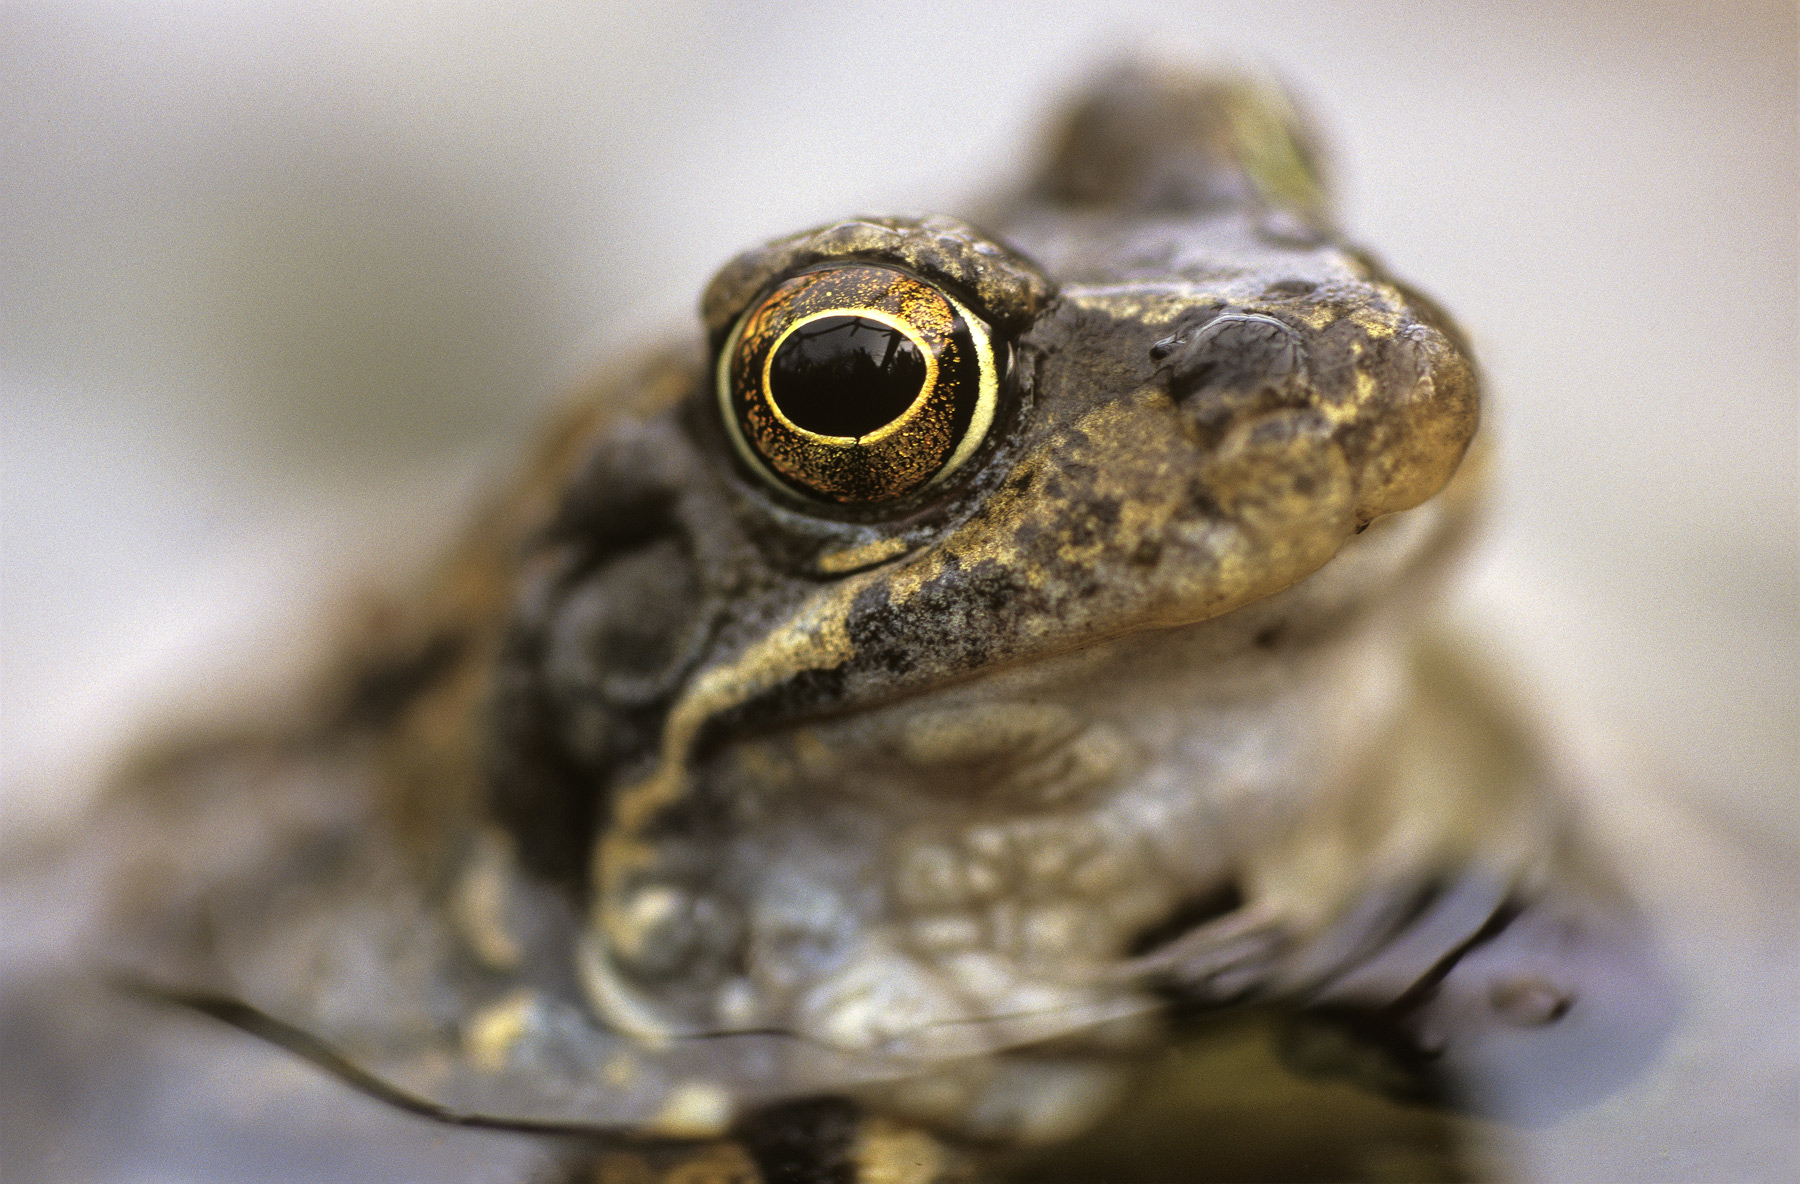 This little frog sat in our back garden pond and eyed me suspiciously as I closed in with my camera. I decided that the...